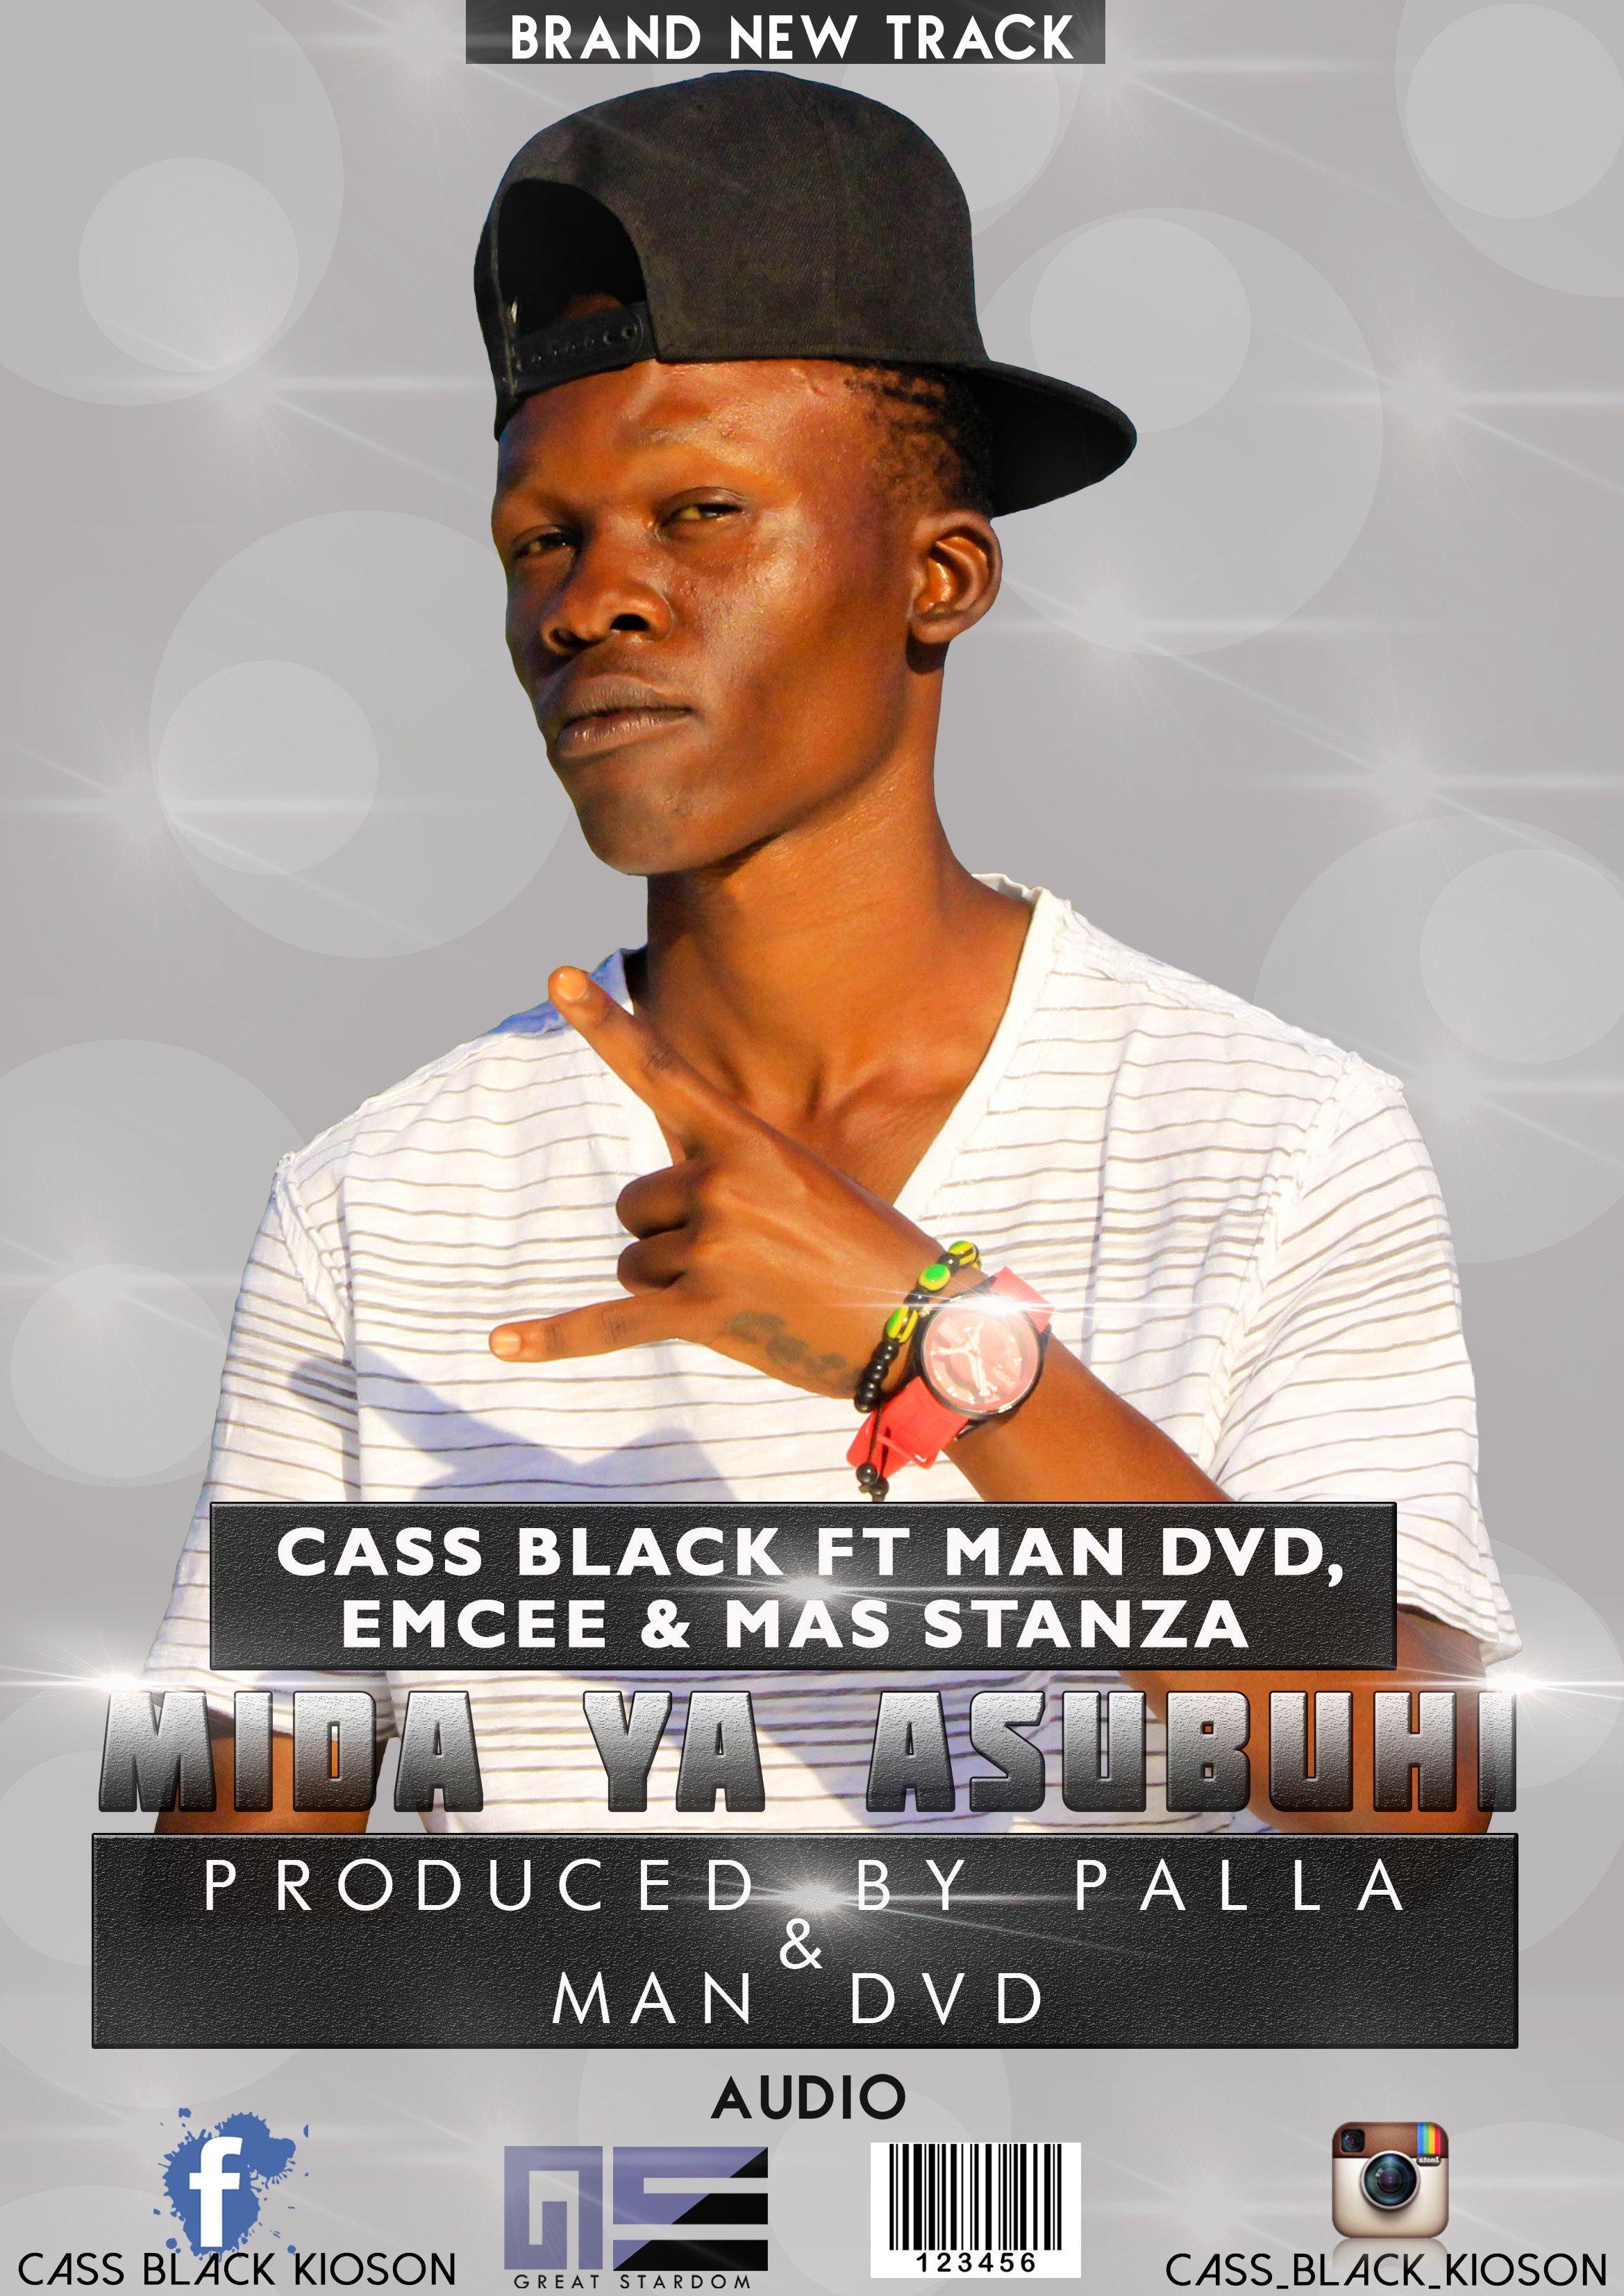 cass black kioson - Cass Black (Ndani ya Mc)ft Big latino+P the Mc